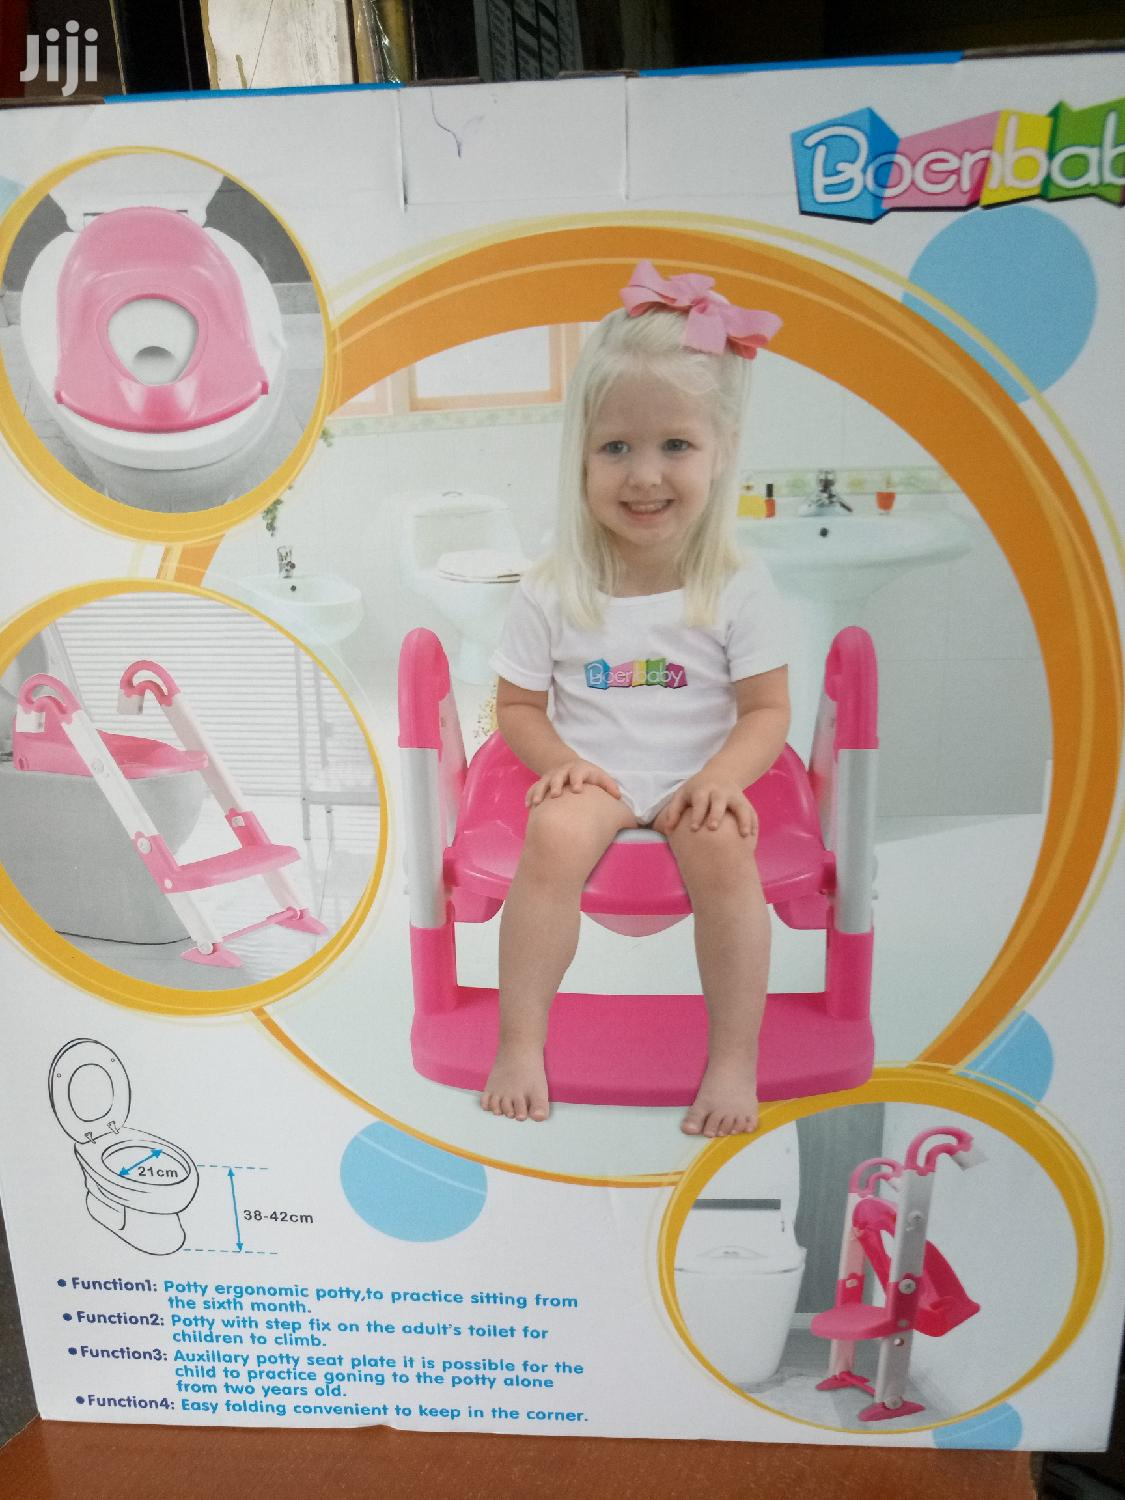 3 in 1 Foldable Kids Seat Toilet Trainer Potty